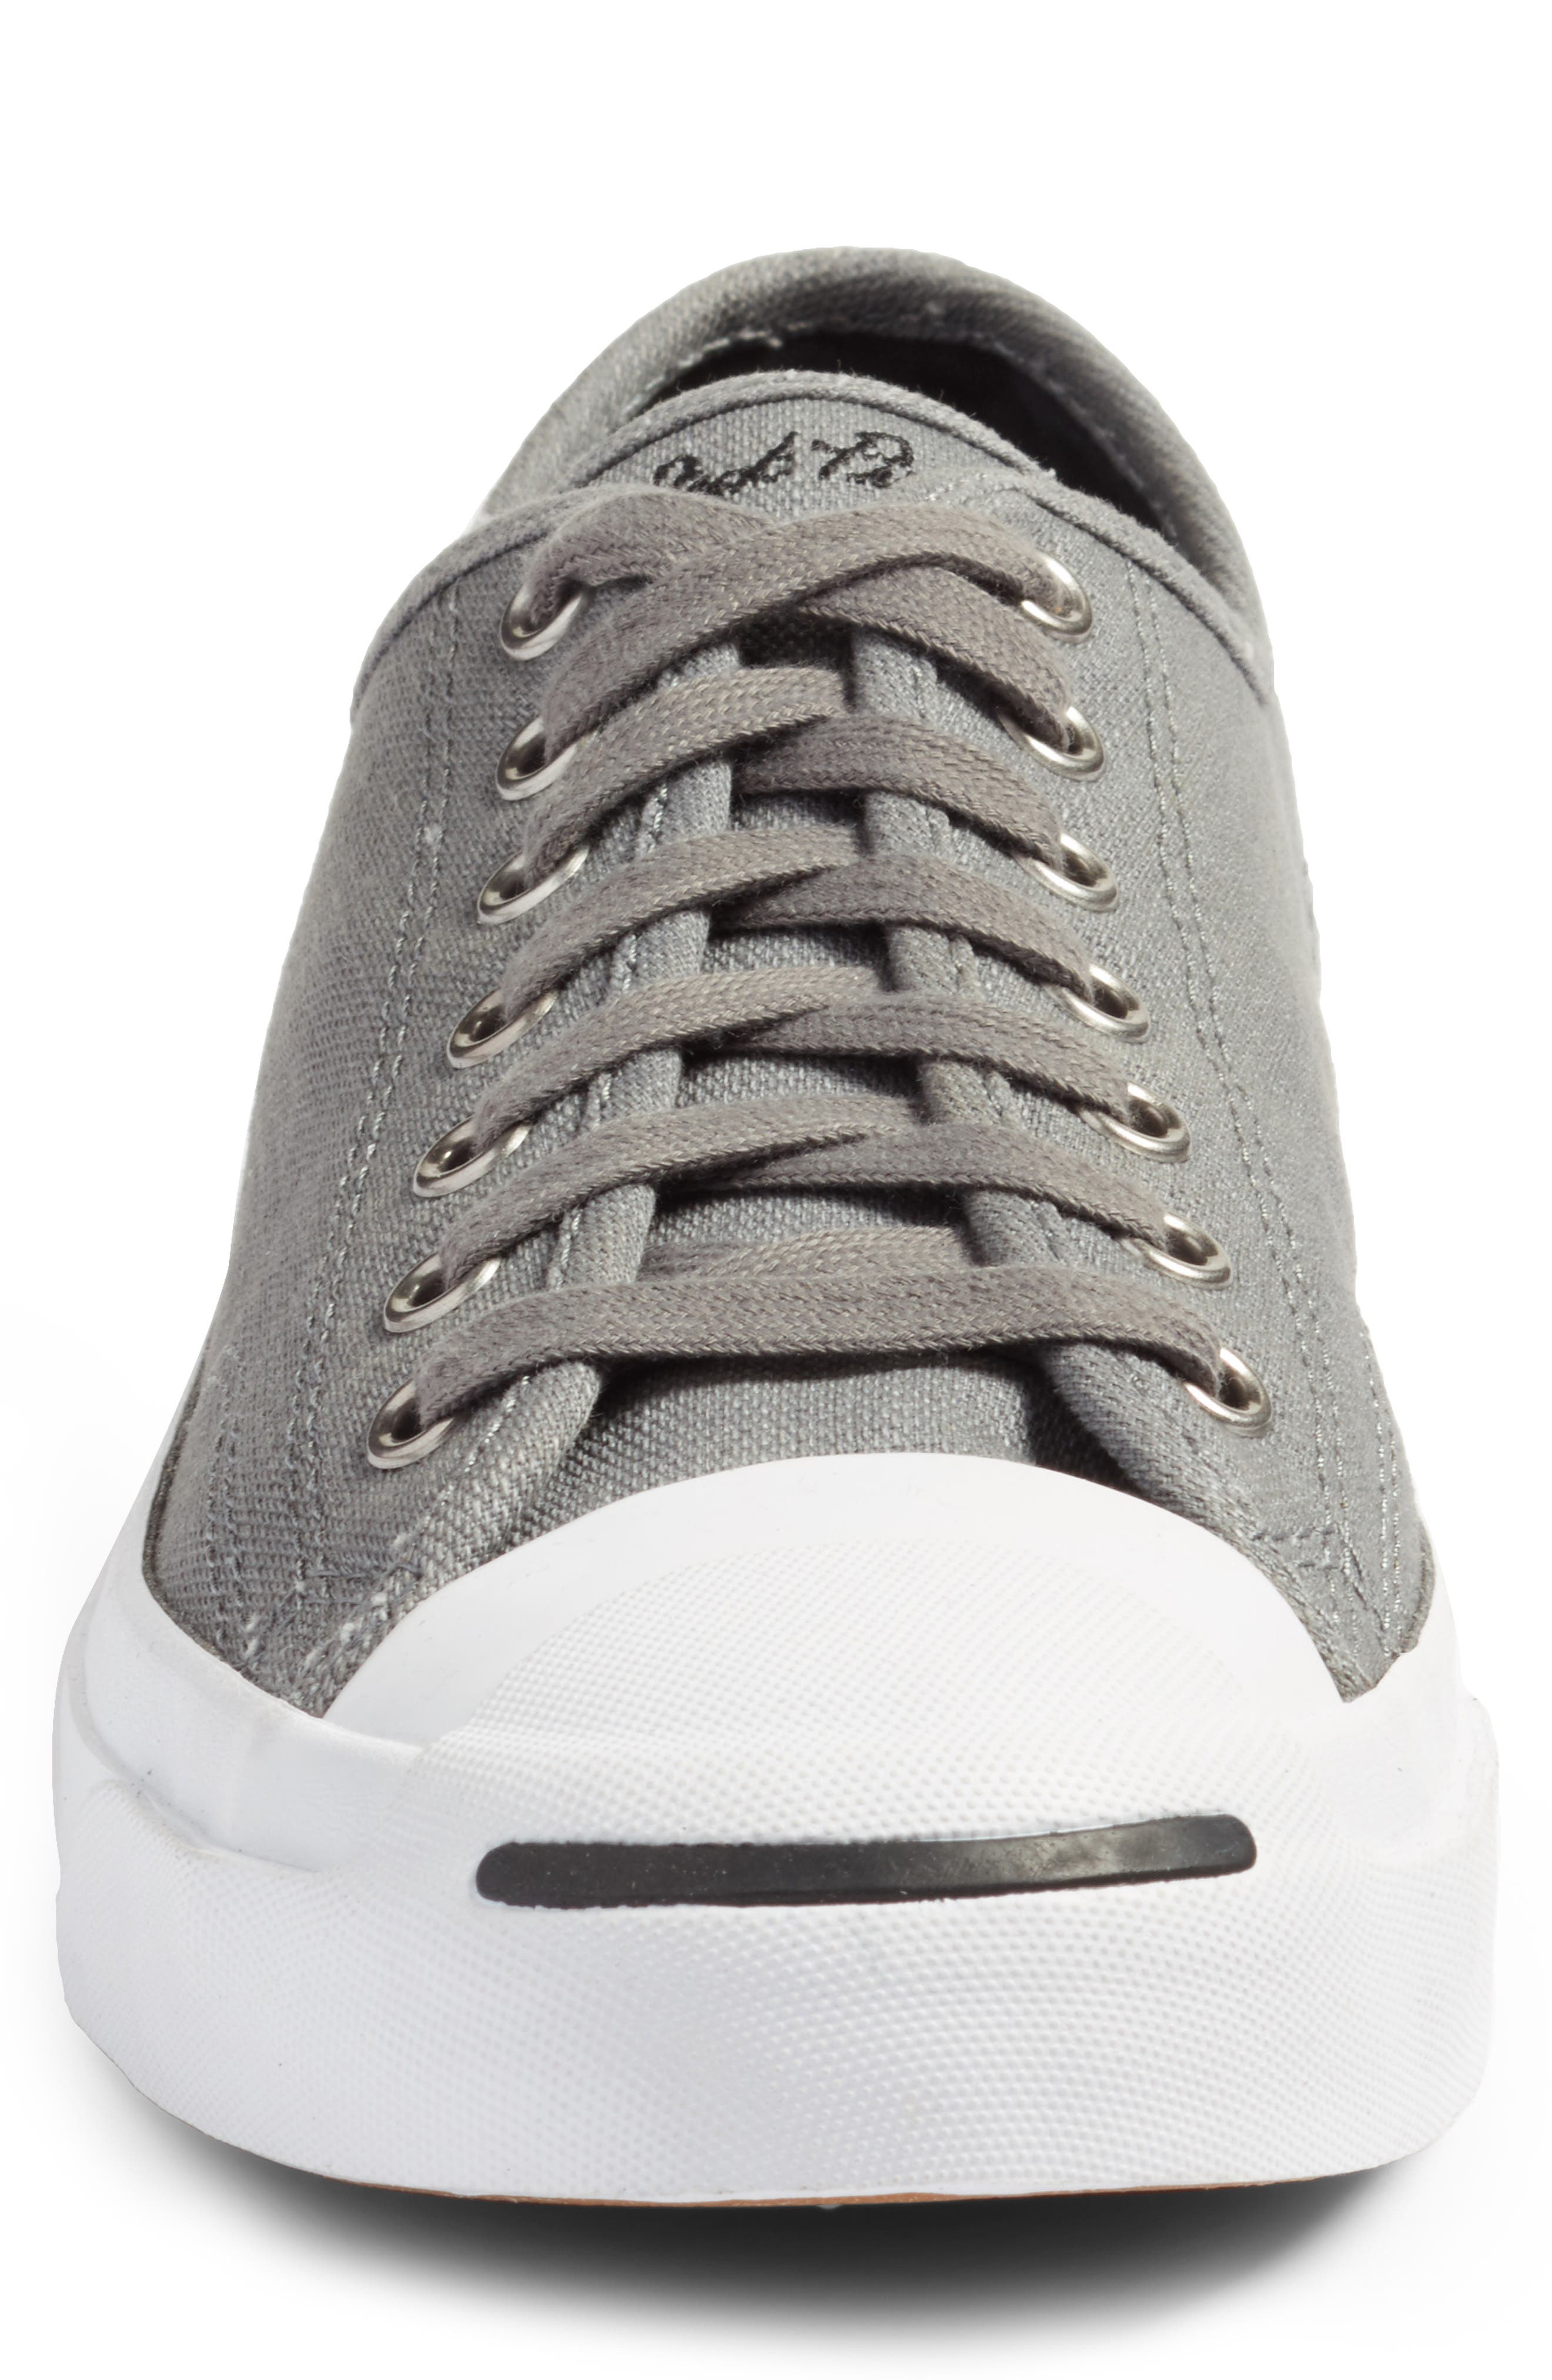 Jack Purcell Ox Sneaker,                             Alternate thumbnail 4, color,                             028